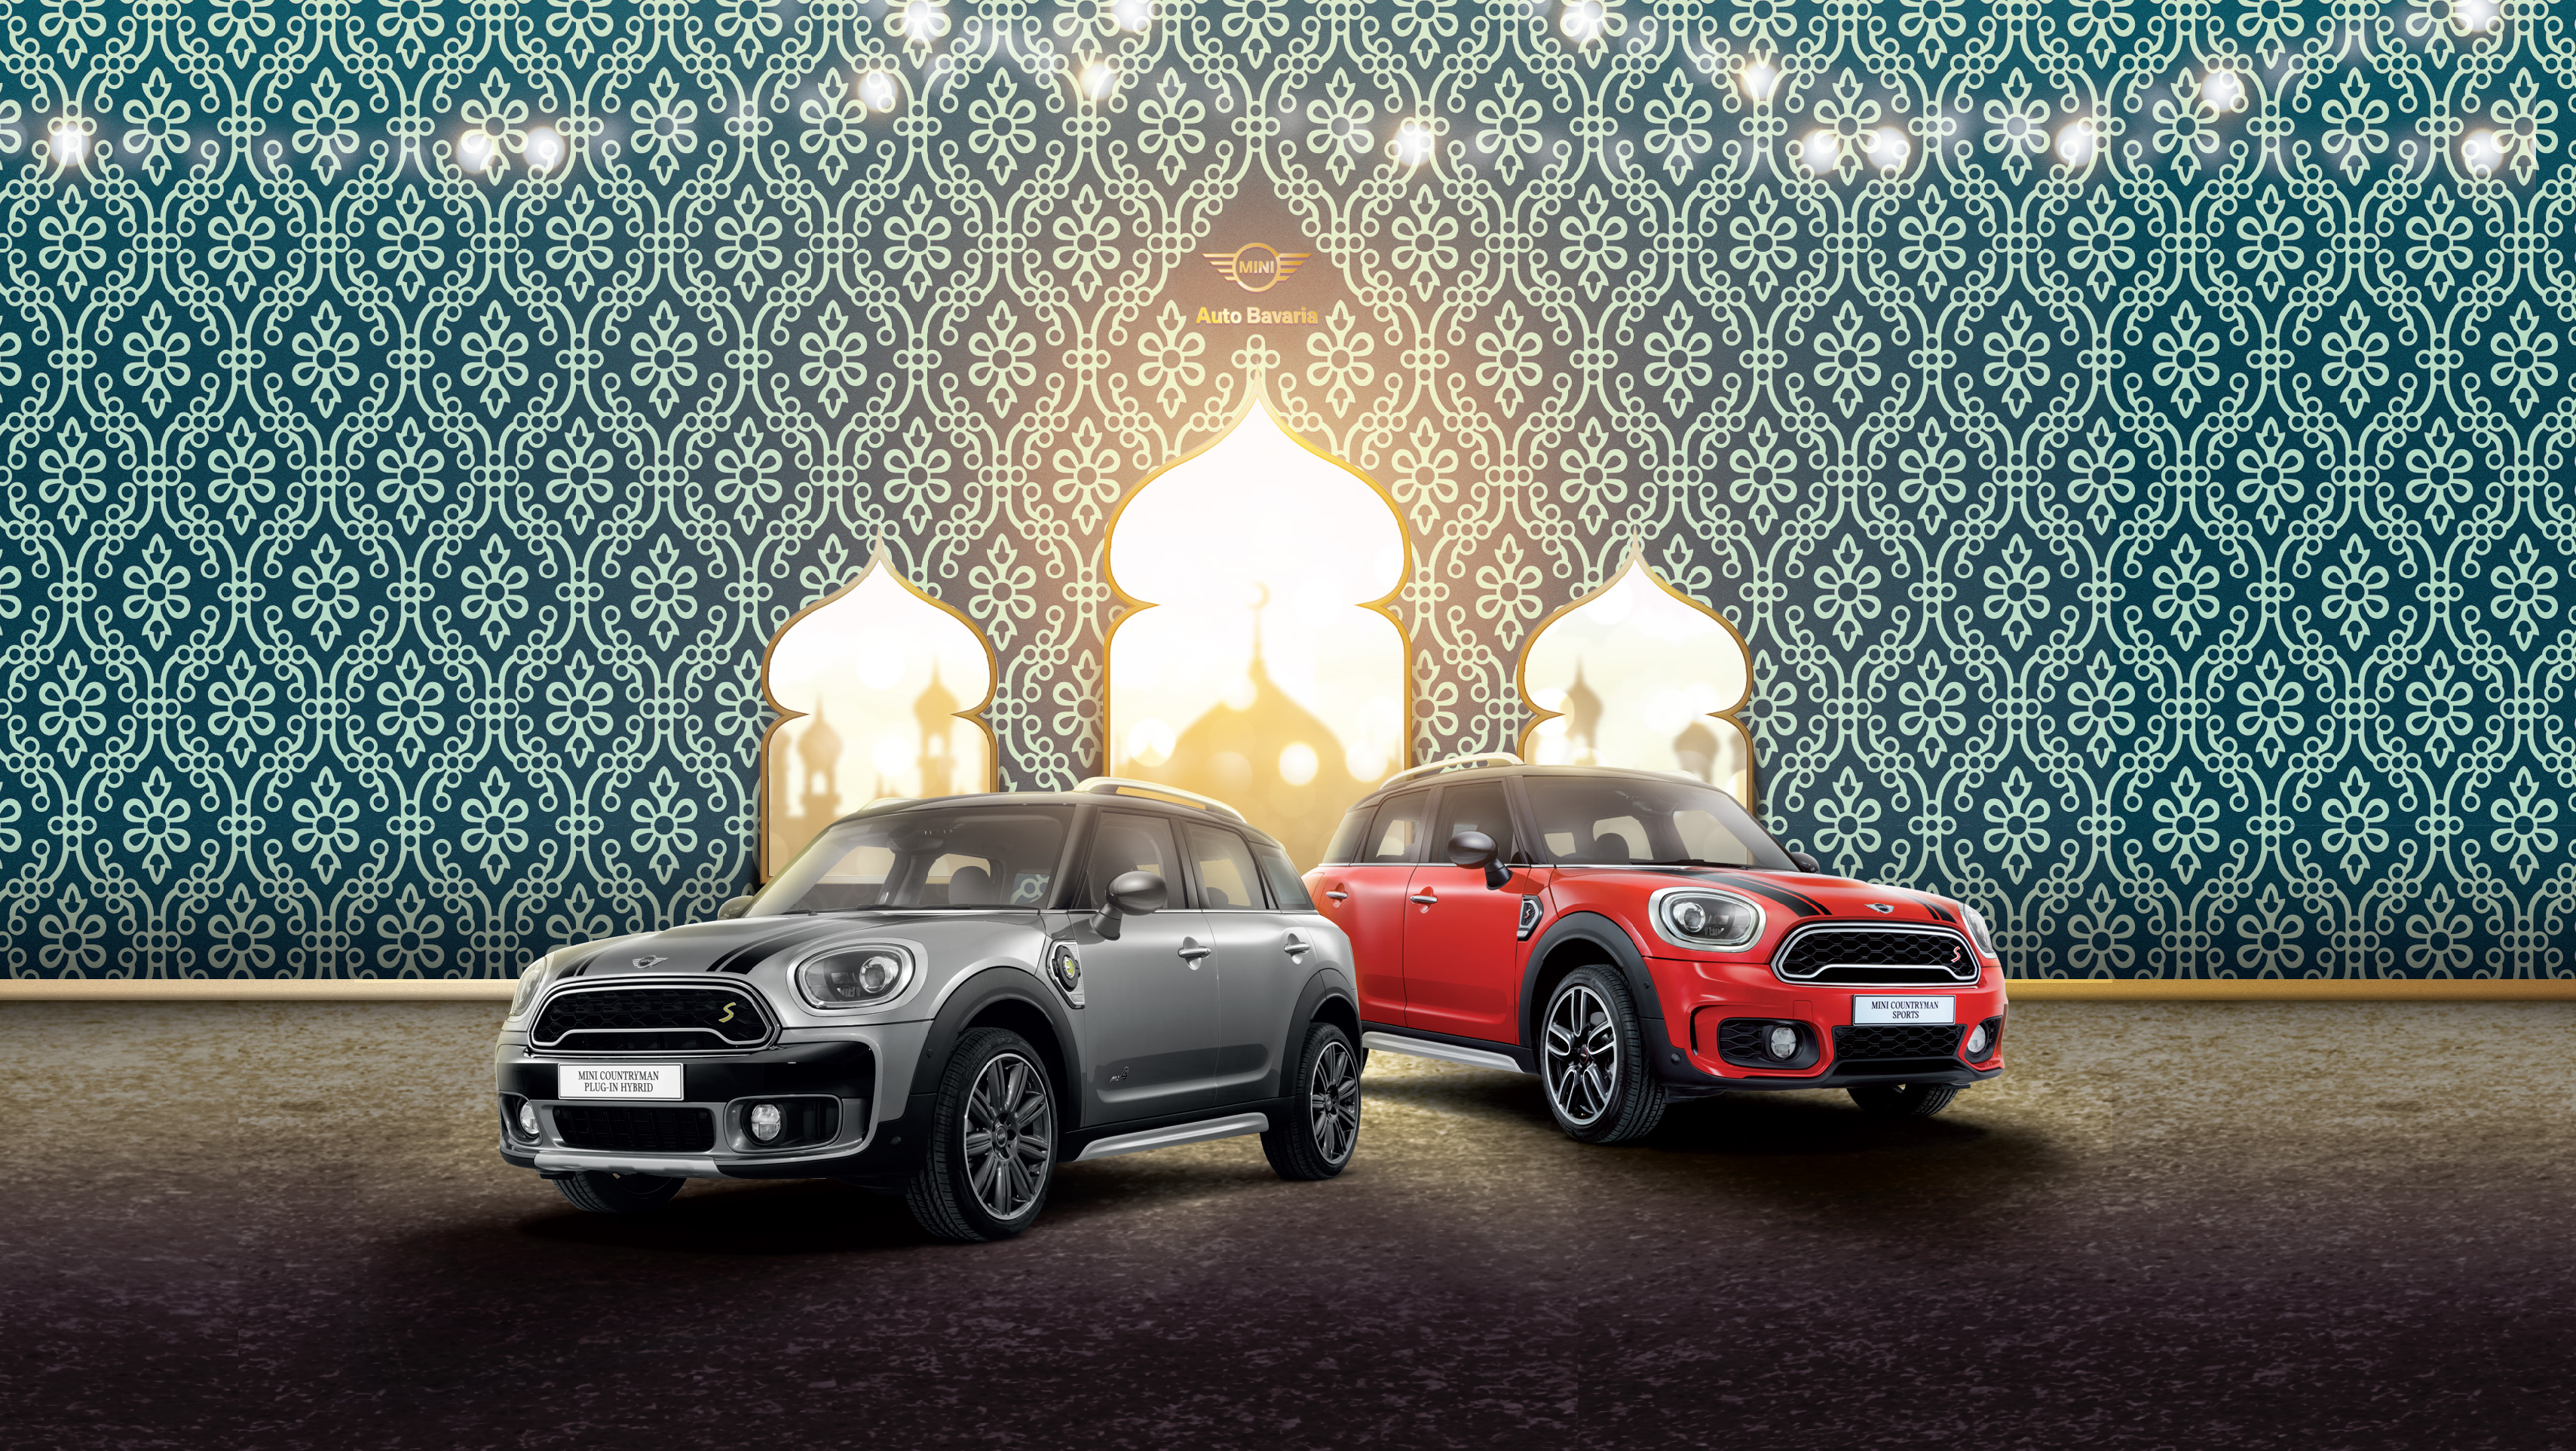 Ad Own A New Mini This Raya From Auto Bavaria Take Home A